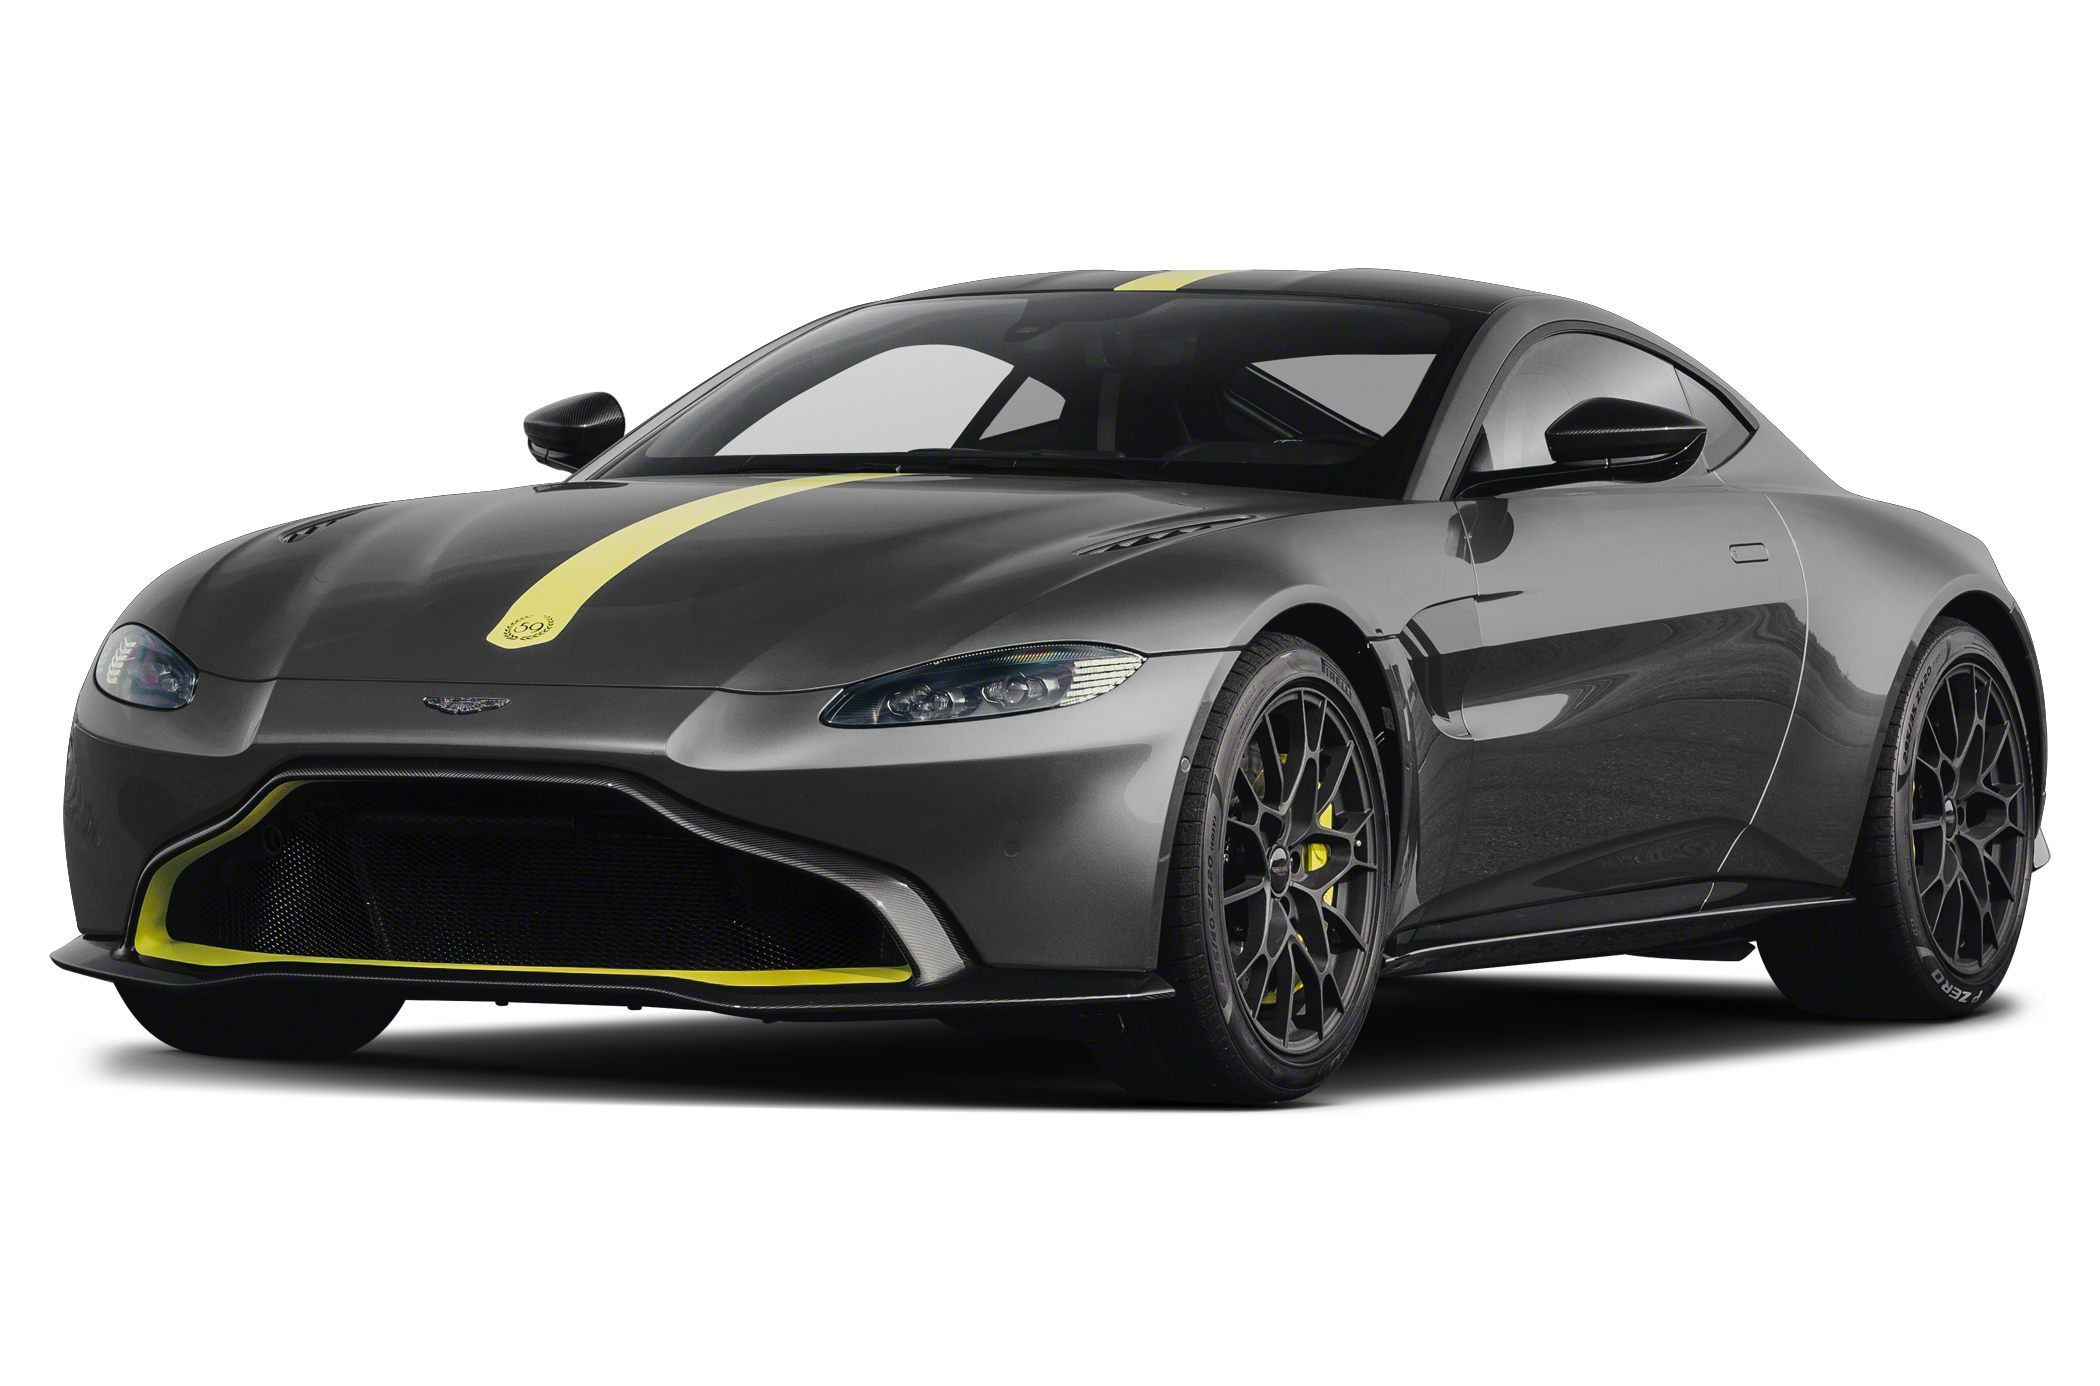 2020 Aston Martin Vantage 59 Edition 2dr Coupe Amr Specs And Prices